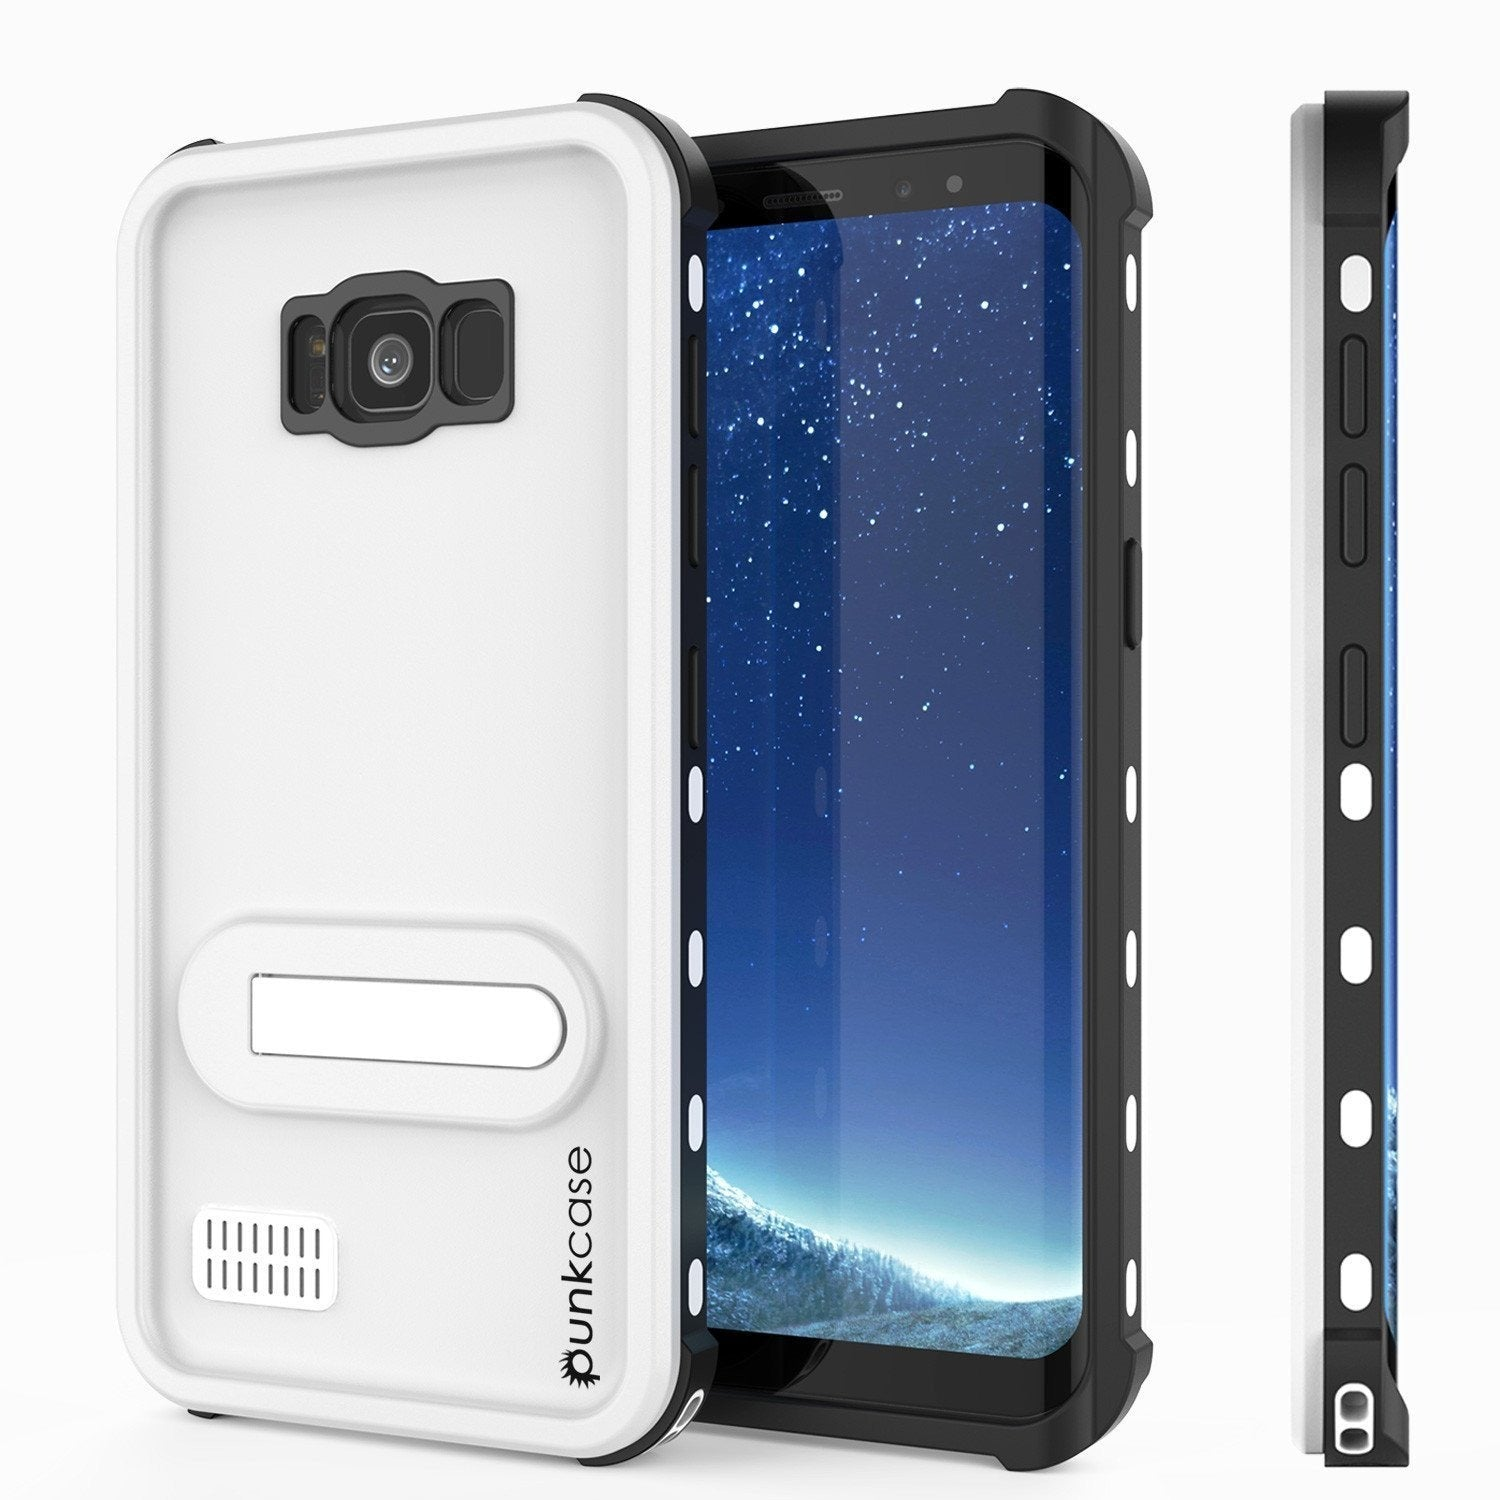 Protector [White]Galaxy S8 Waterproof Case, Punkcase [KickStud Series] [Slim Fit] [IP68 Certified] [Shockproof] [Snowproof] Armor Cover [Teal] - PunkCase NZ